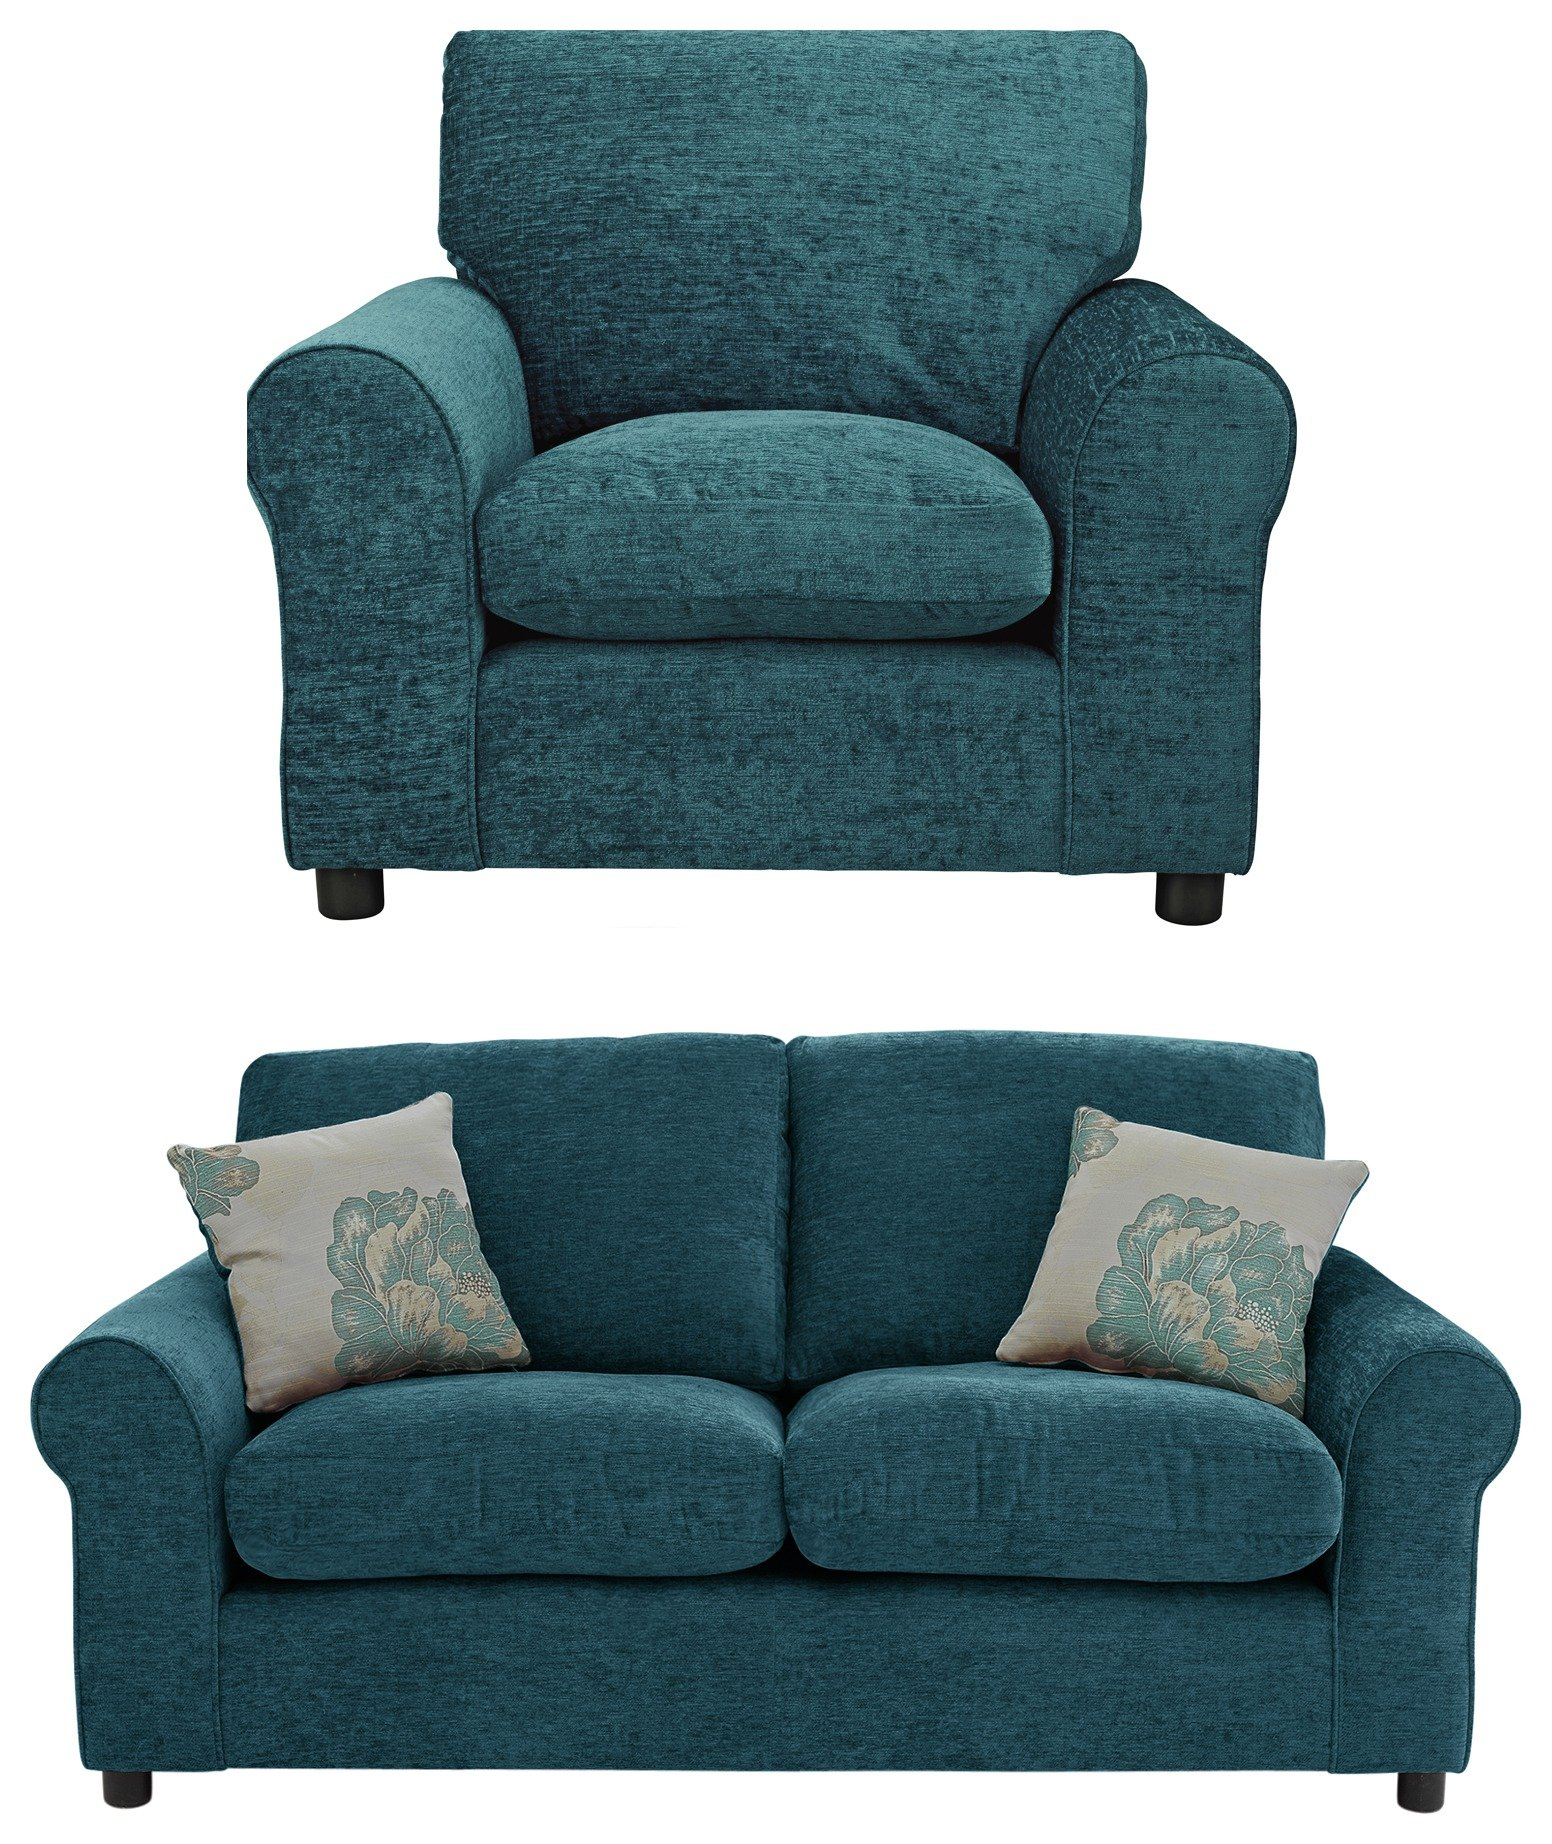 argos ava fabric sofa review best quality sectional sofas home tessa regular and chair teal